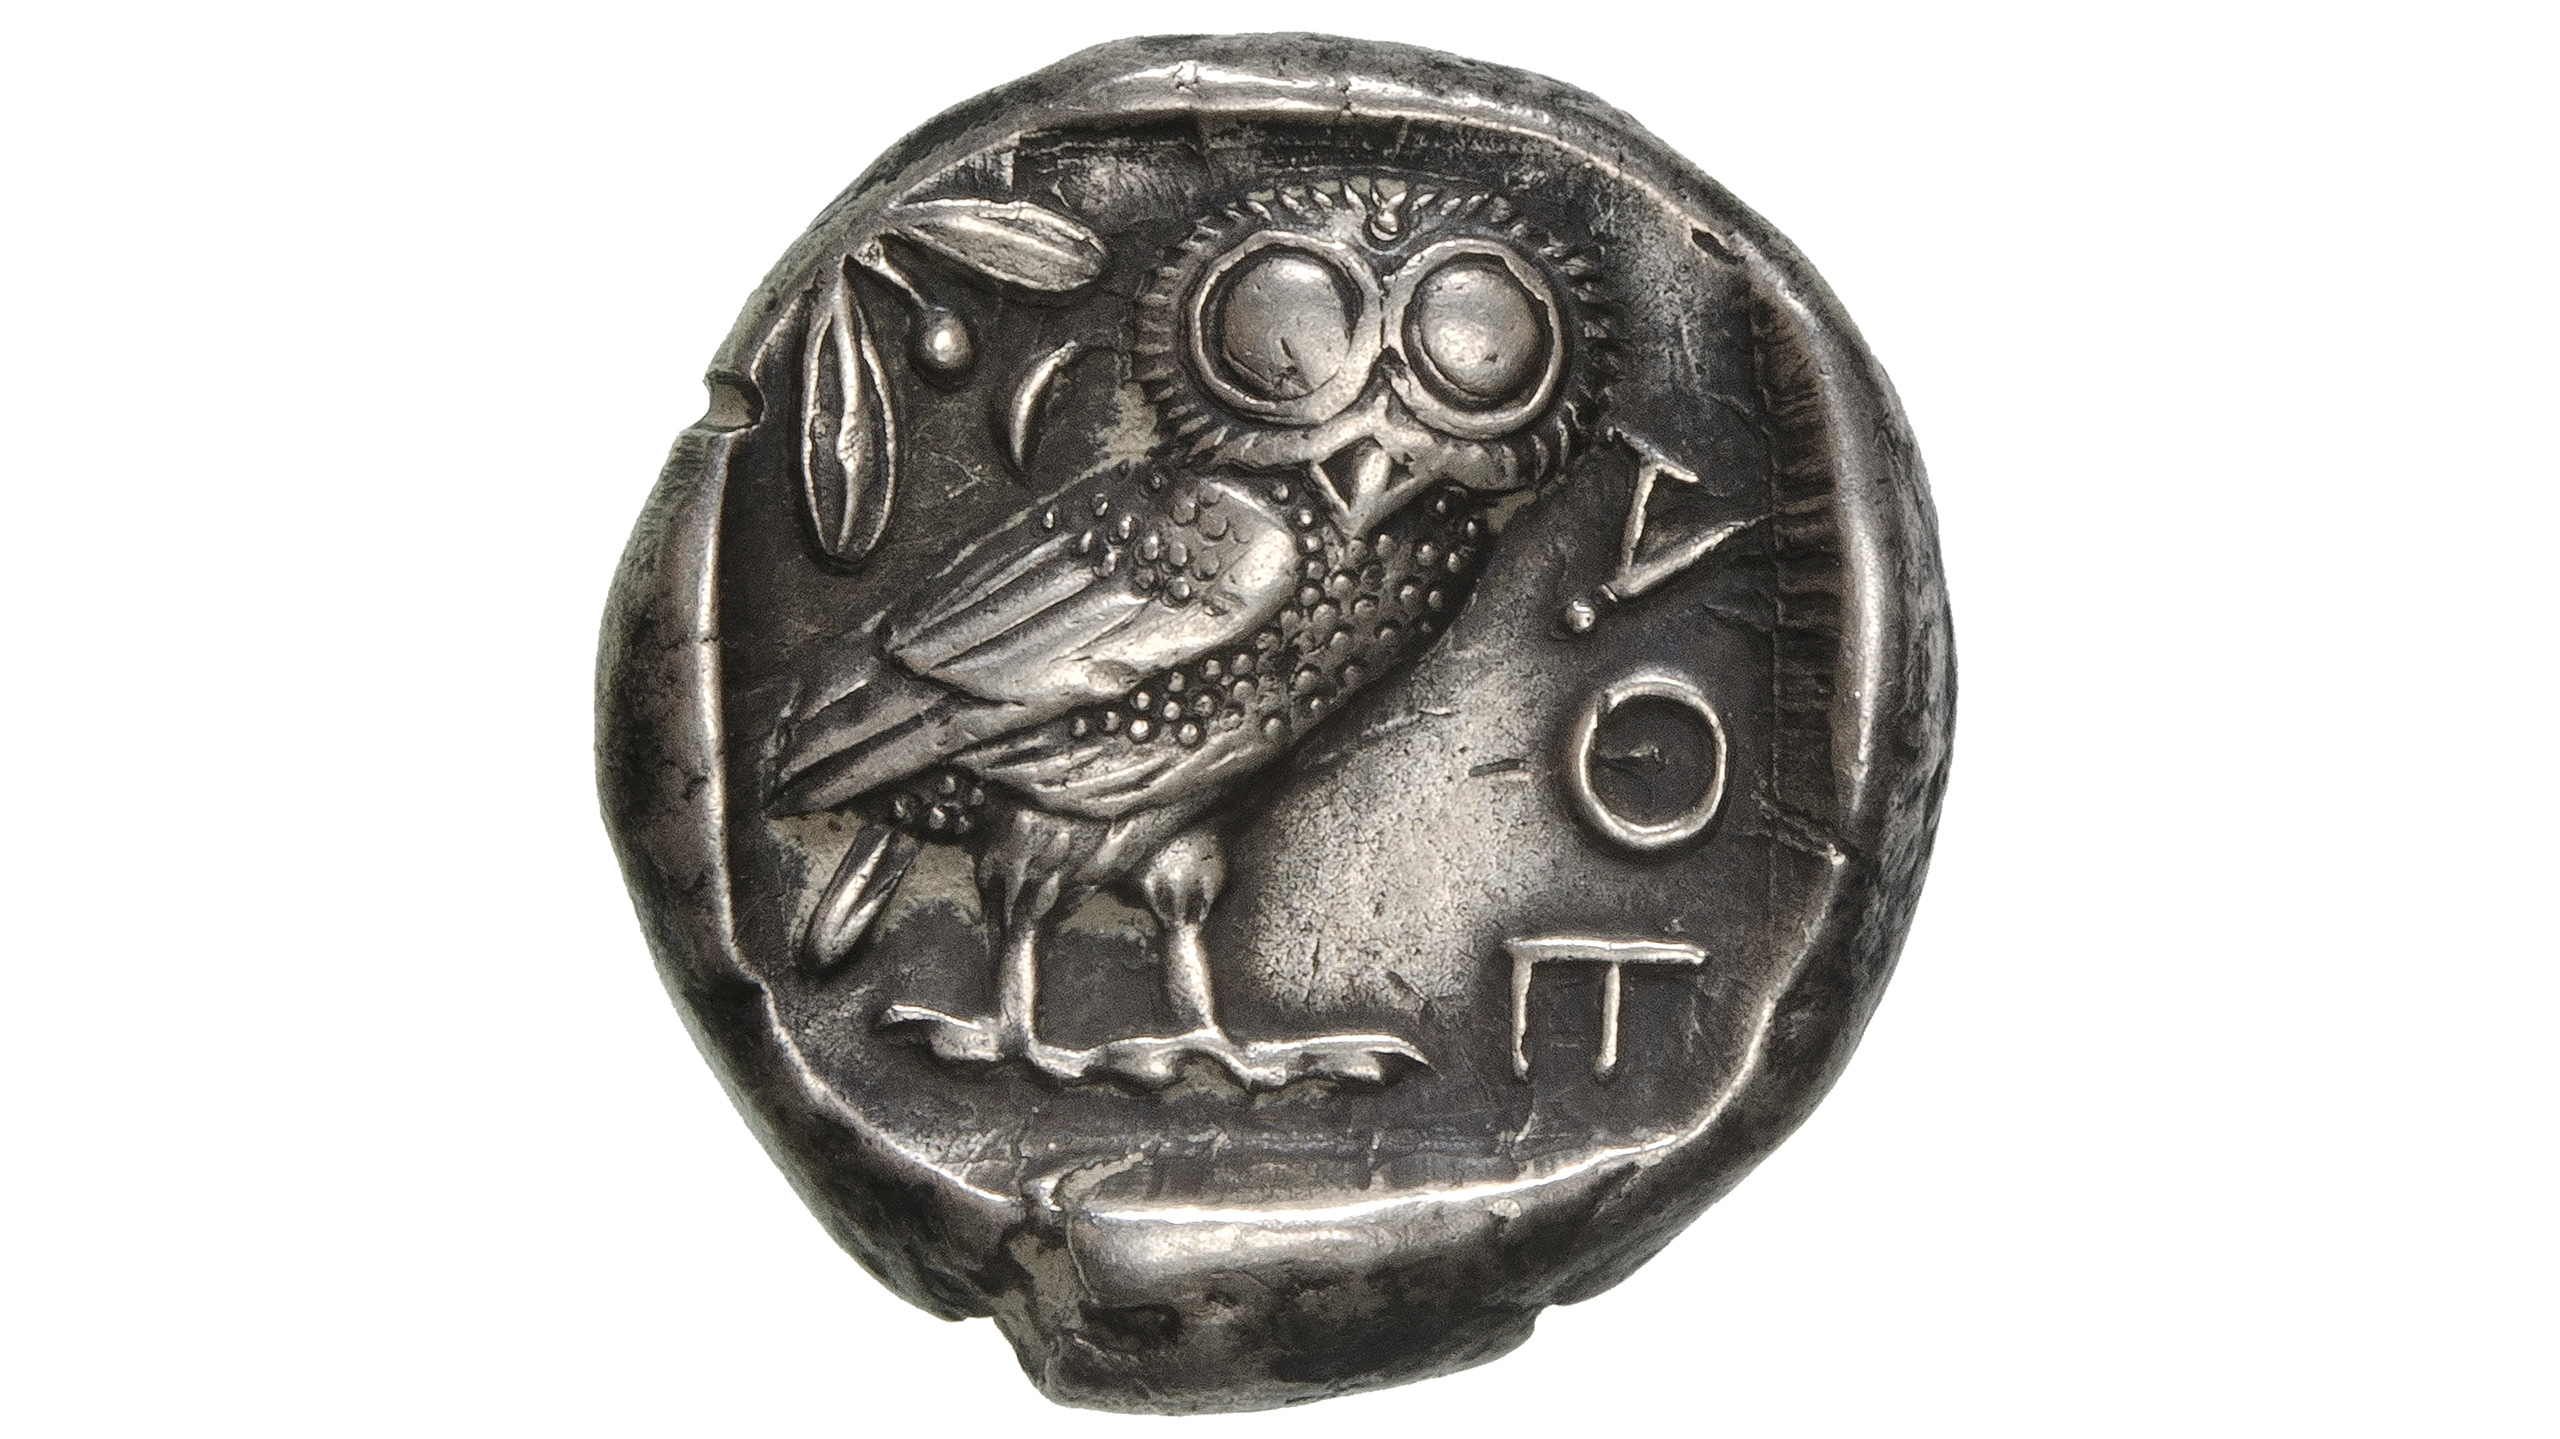 Photography of Greek Coin in silver from Athens classical period with the owl of Athena AOE, photographed for Morton and Eden in association with Sotheby's sold in auction in London Photography and retouch by Maria Queralt